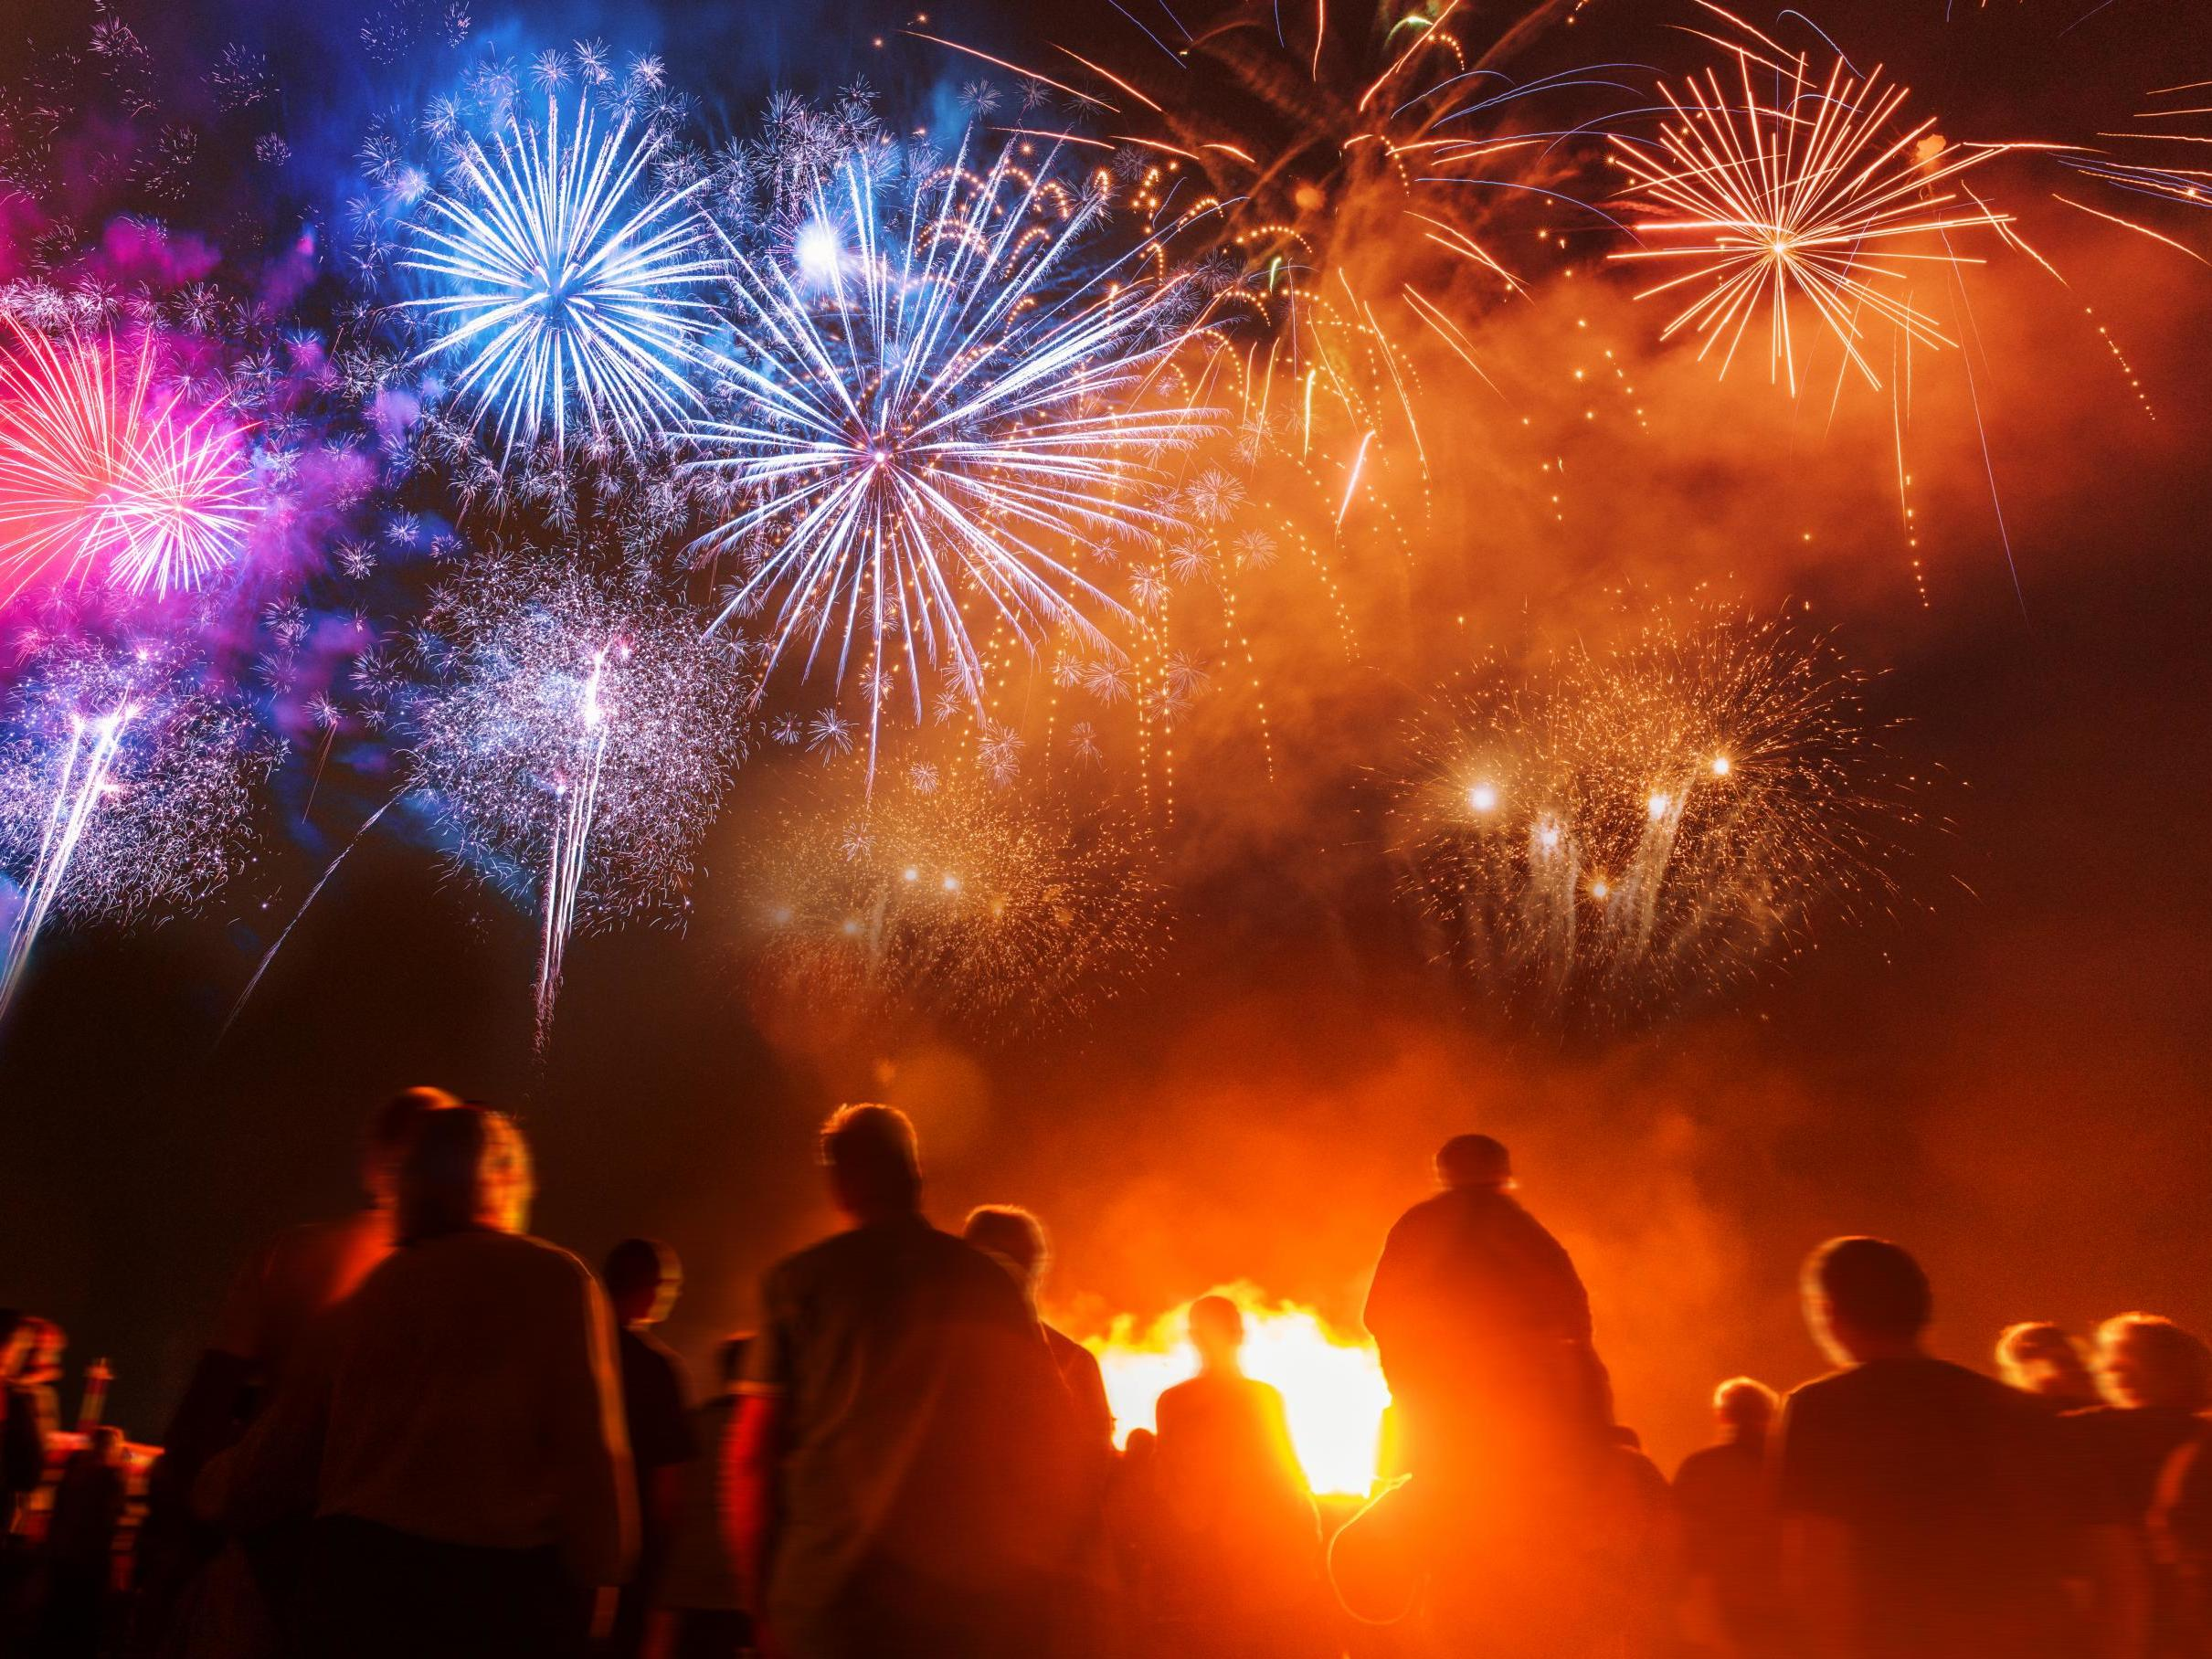 MPs to consider fireworks sales ban as anger mounts over effect on animals